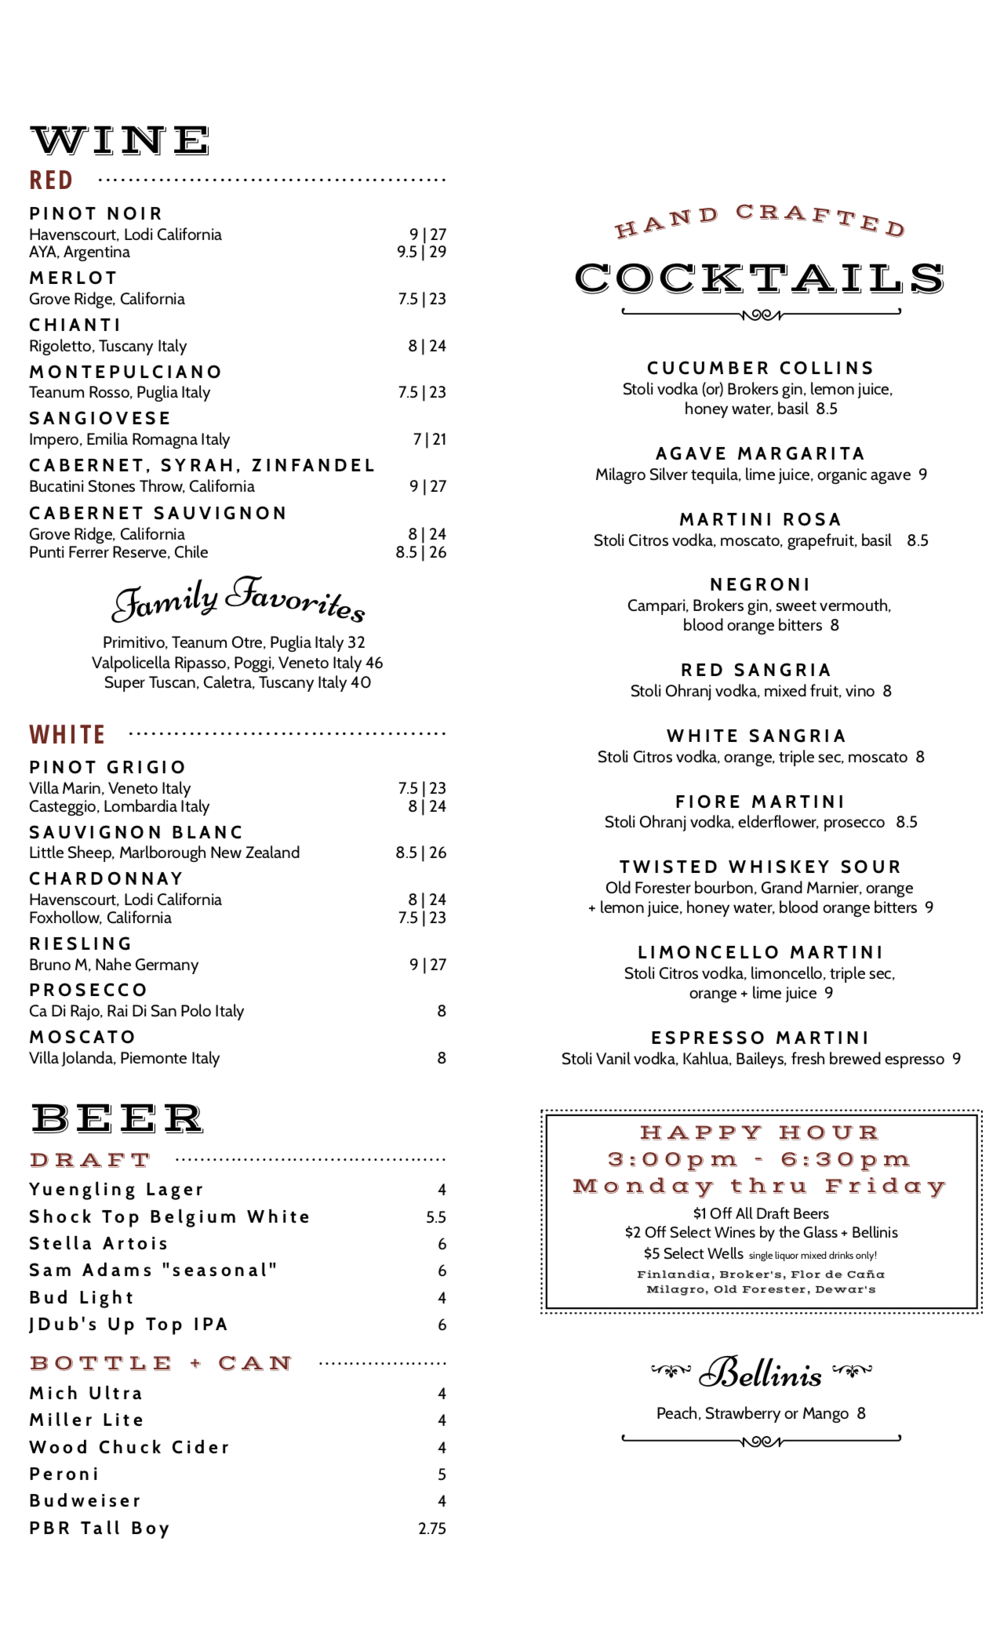 V2 FINAL - WINE BEER LIQUOR MENU 6.19.2018PNG.png